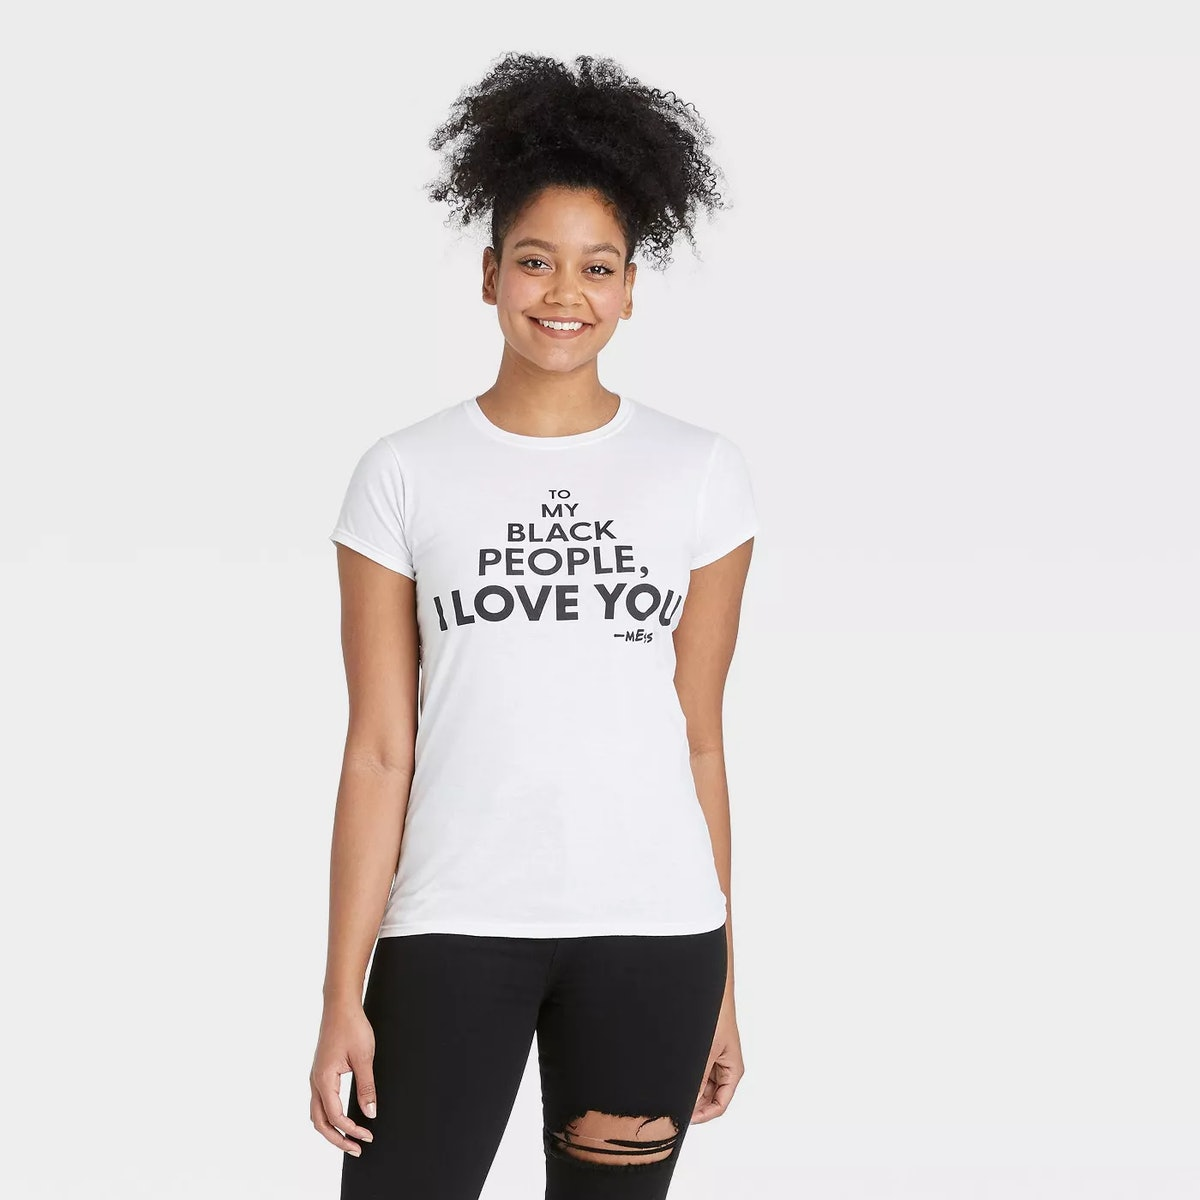 Mess In A Bottle x Target Black History Month Women's 'To My Black People I Love You' Short Sleeve T...